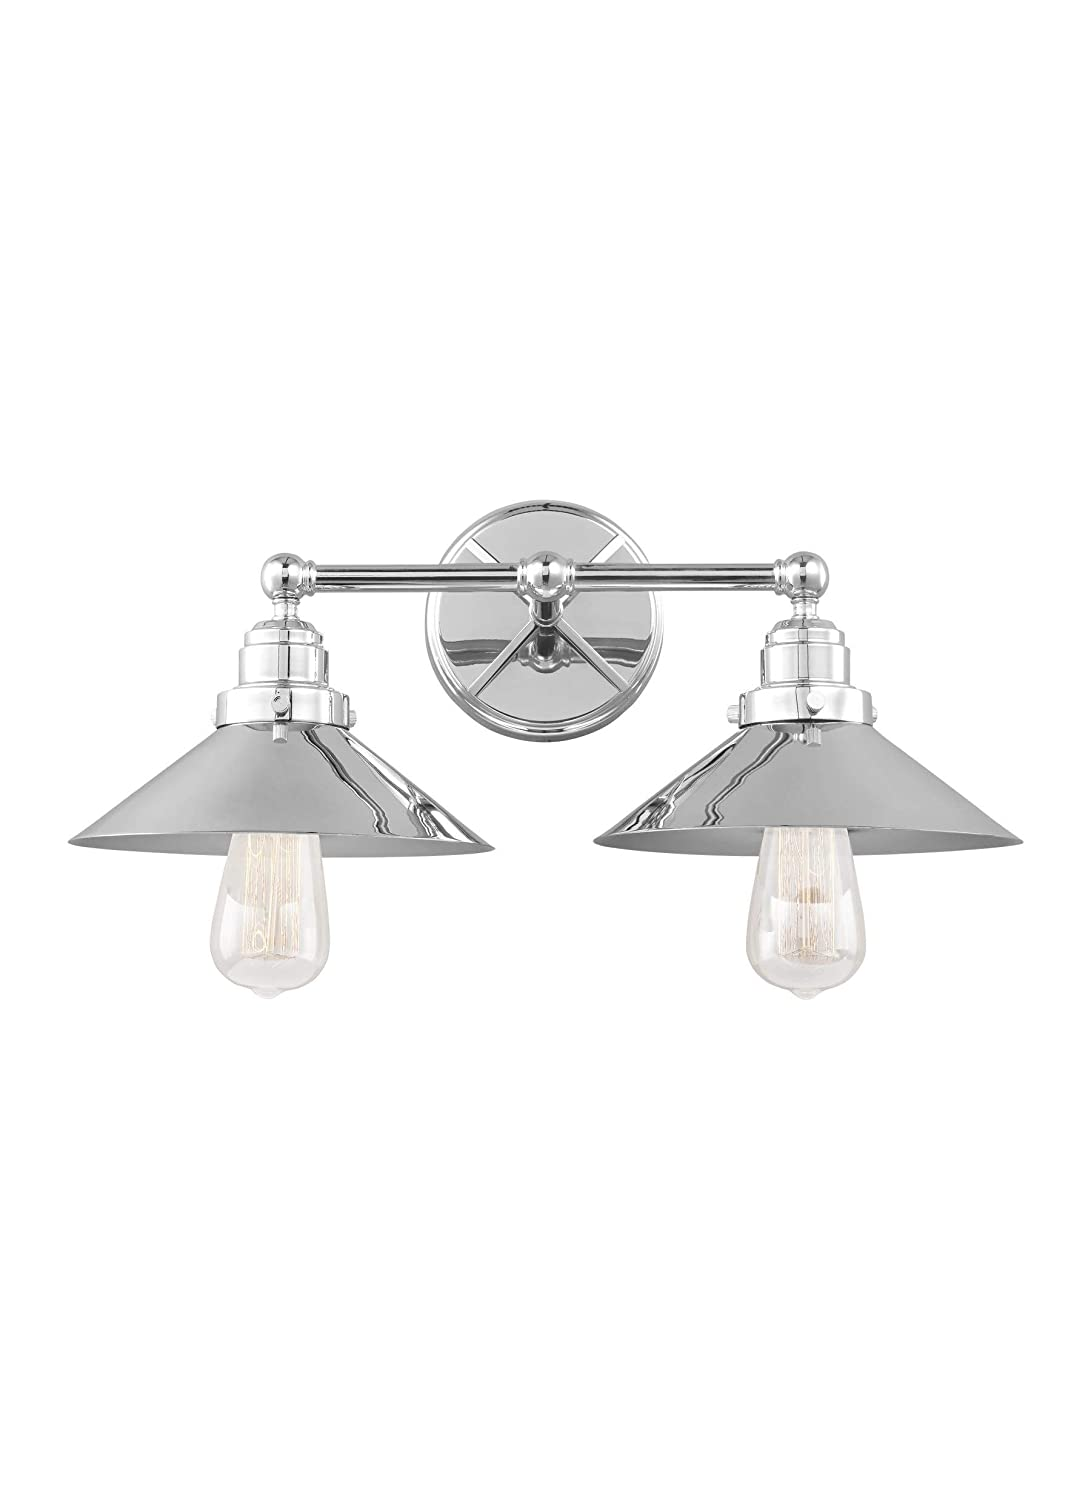 Feiss VS23402CH Hooper Wall Vanity Bath Lighting, Chrome, 2-Light 20 W x 8 H 150watts